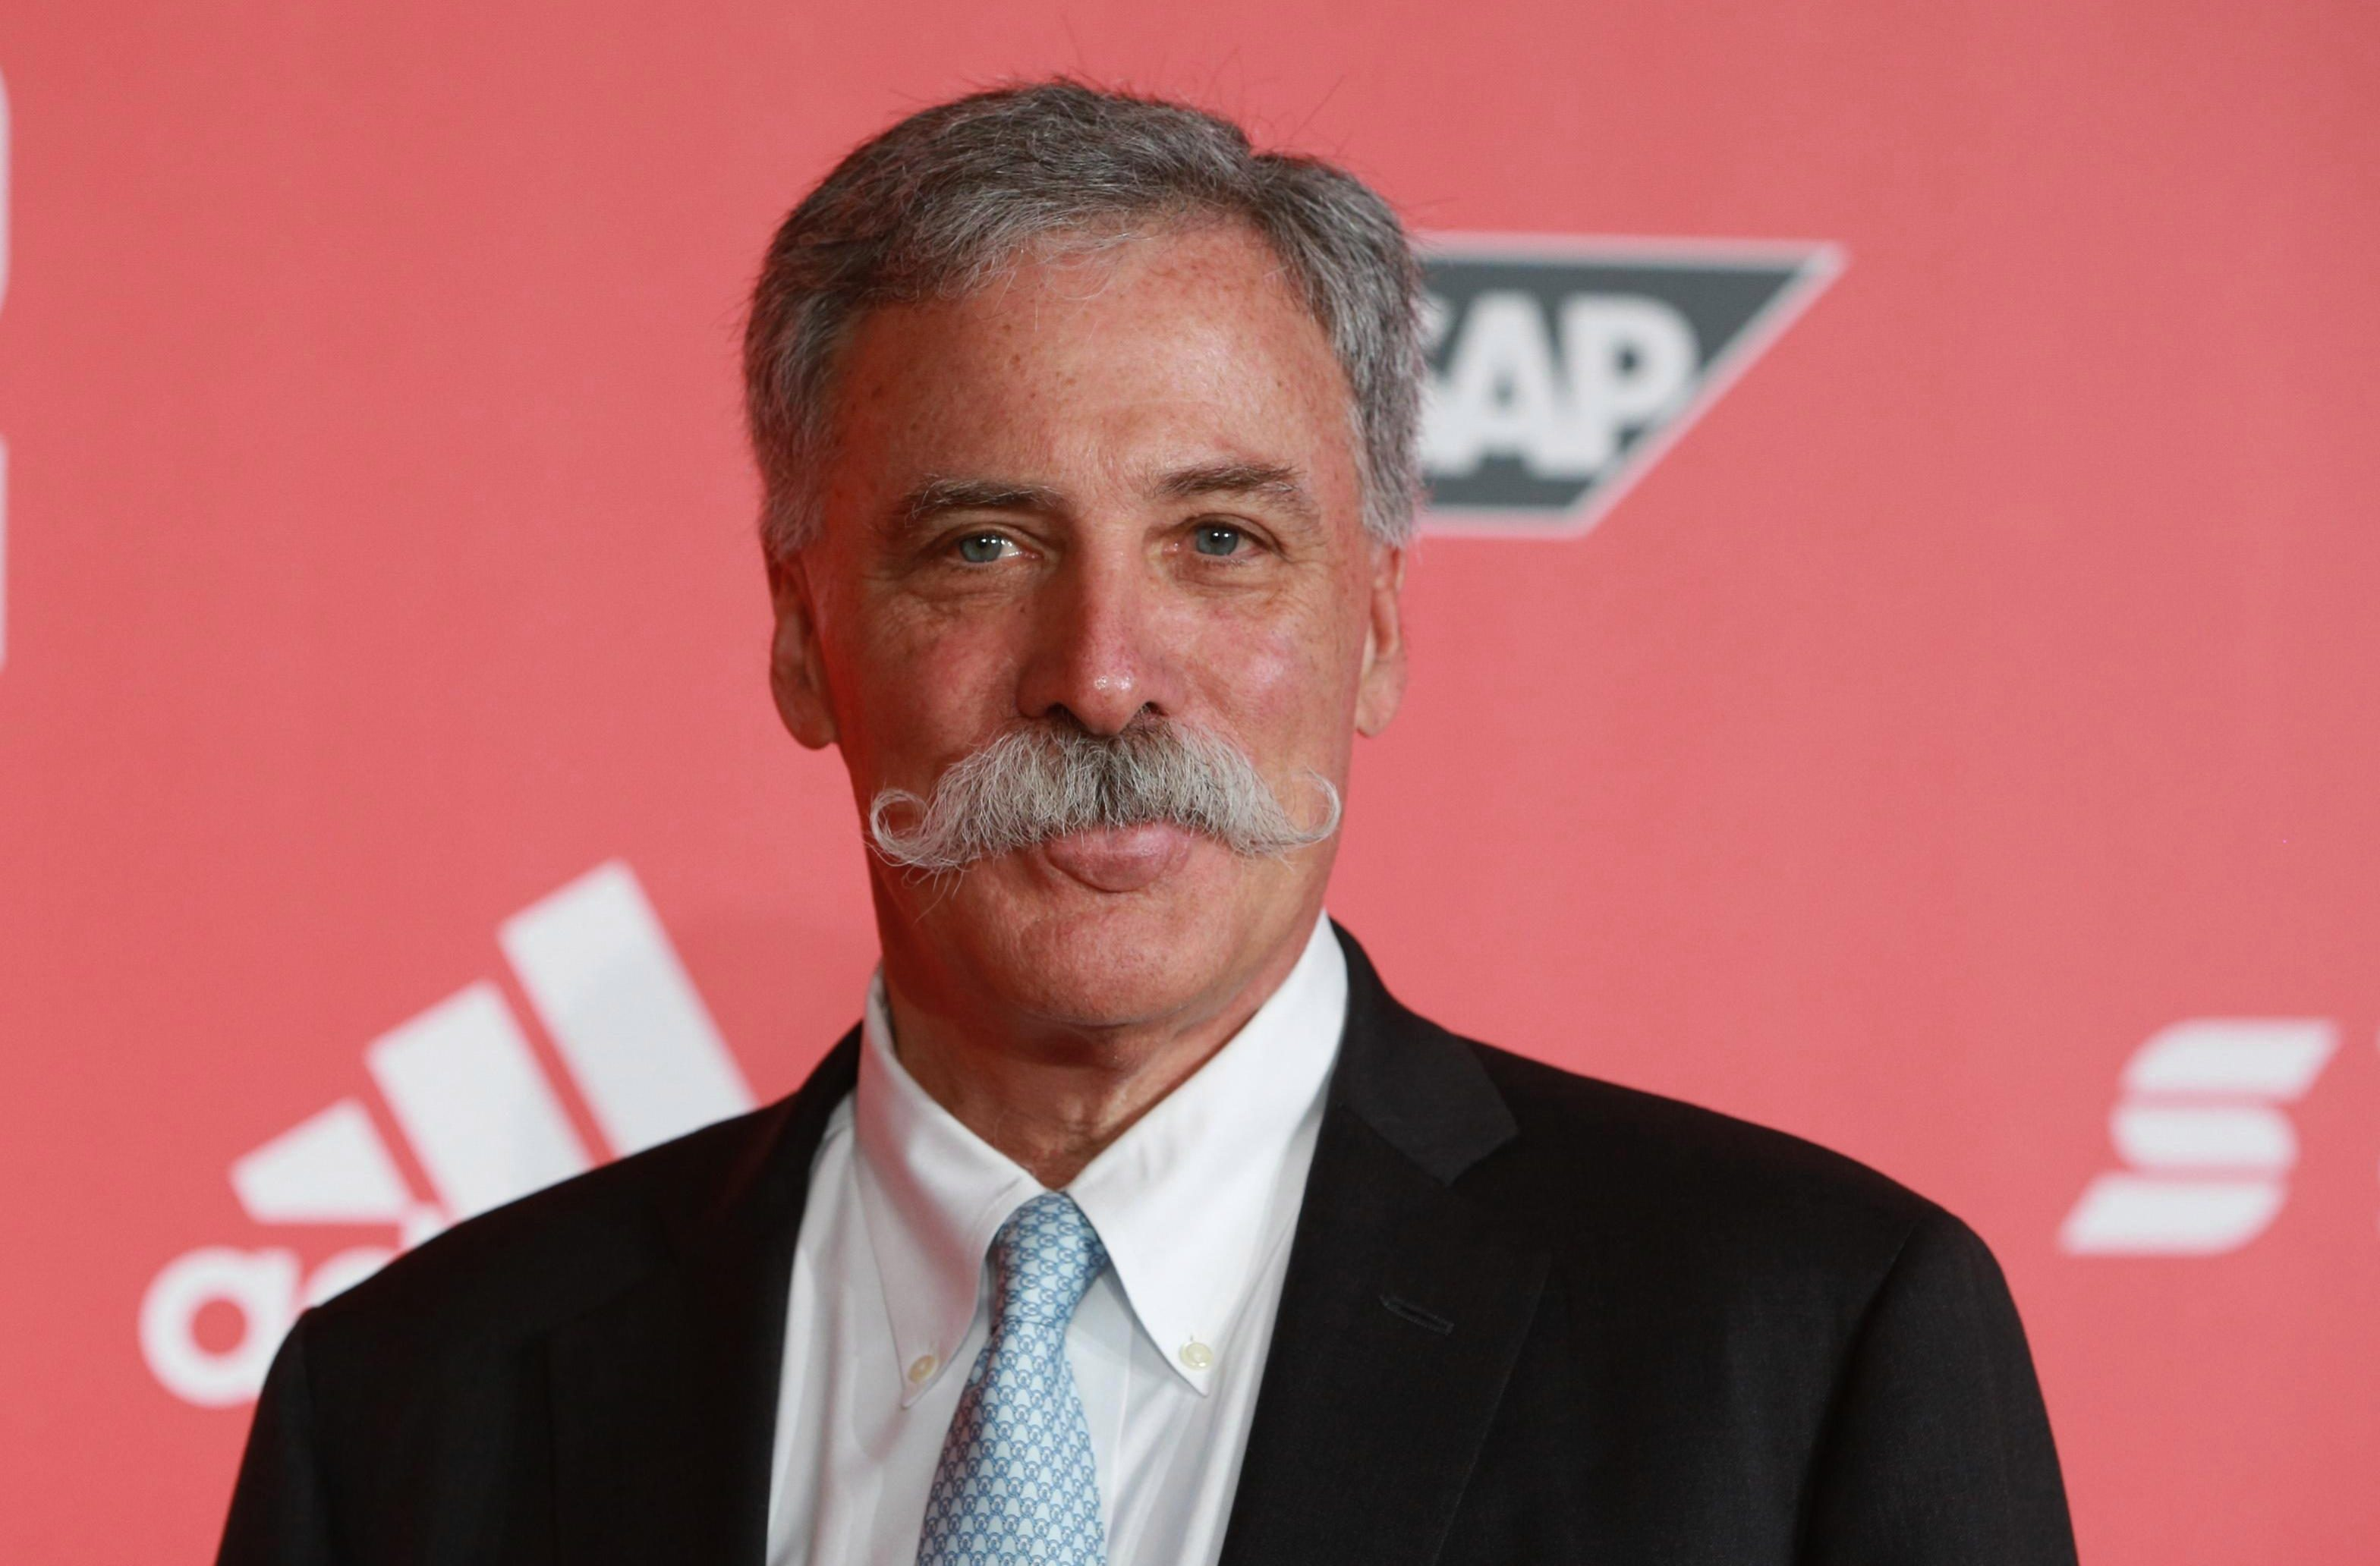 F1 supremo Chase Carey is keen to shake up the sport's current regulations and make it more competitive